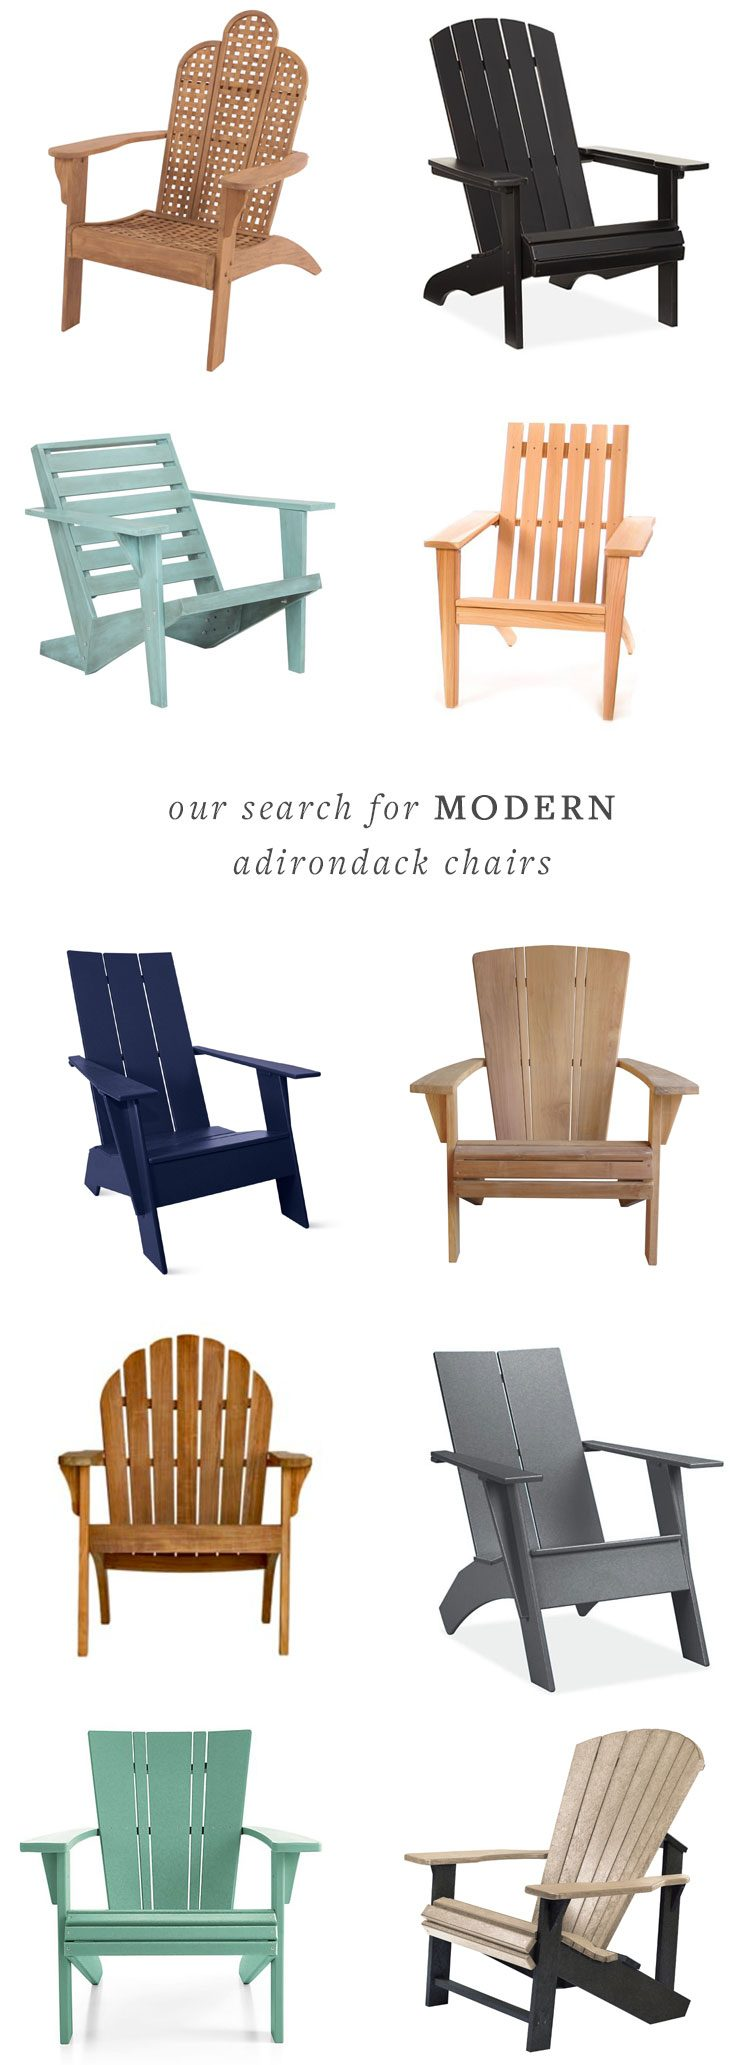 our search for modern adirondack chairs, the perfect addition for summertime entertaining on the deck or patio. via @jojotastic   jojotastic.com #adirondackchairs #outdoordecor #patio #deck #outdoorfurniture #outdoorseating